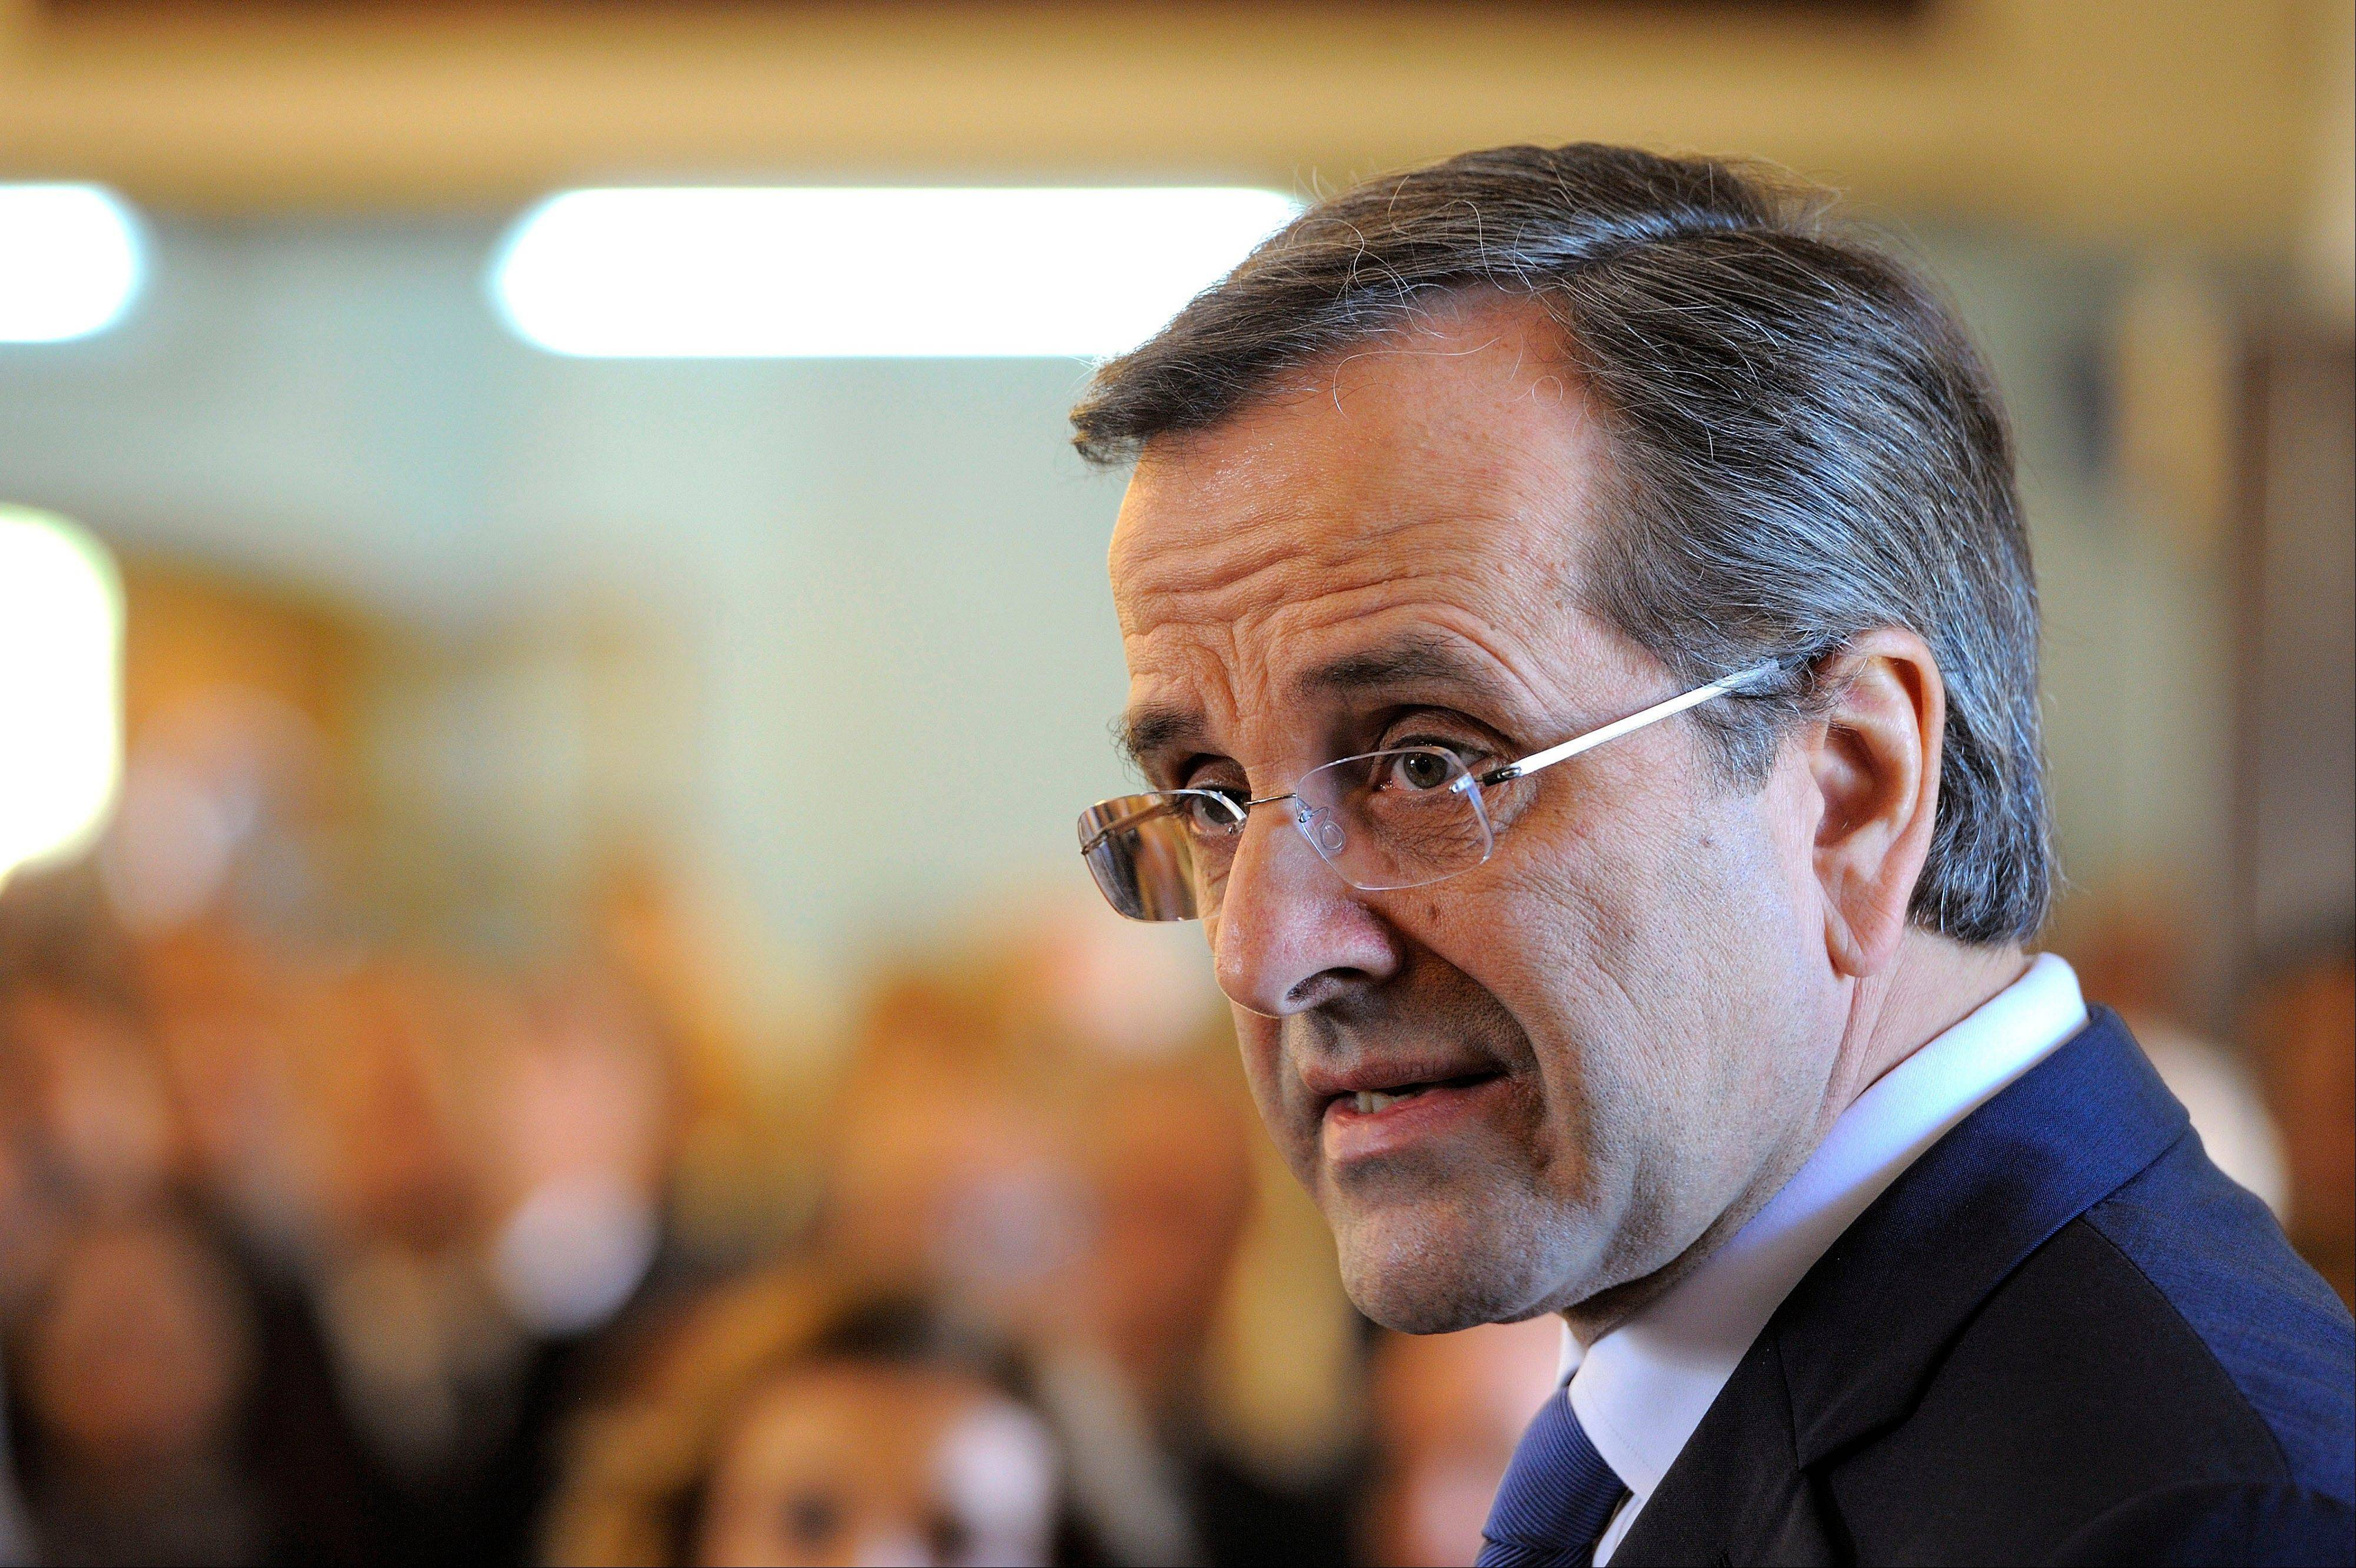 Greek Prime Minister Antonis Samaras speaks at a memorial service for Cyprus' late President Tassos Papadopoulos near the island's capital, Nicosia, Sunday. Samaras is in Cyprus for two-day unofficial visit.